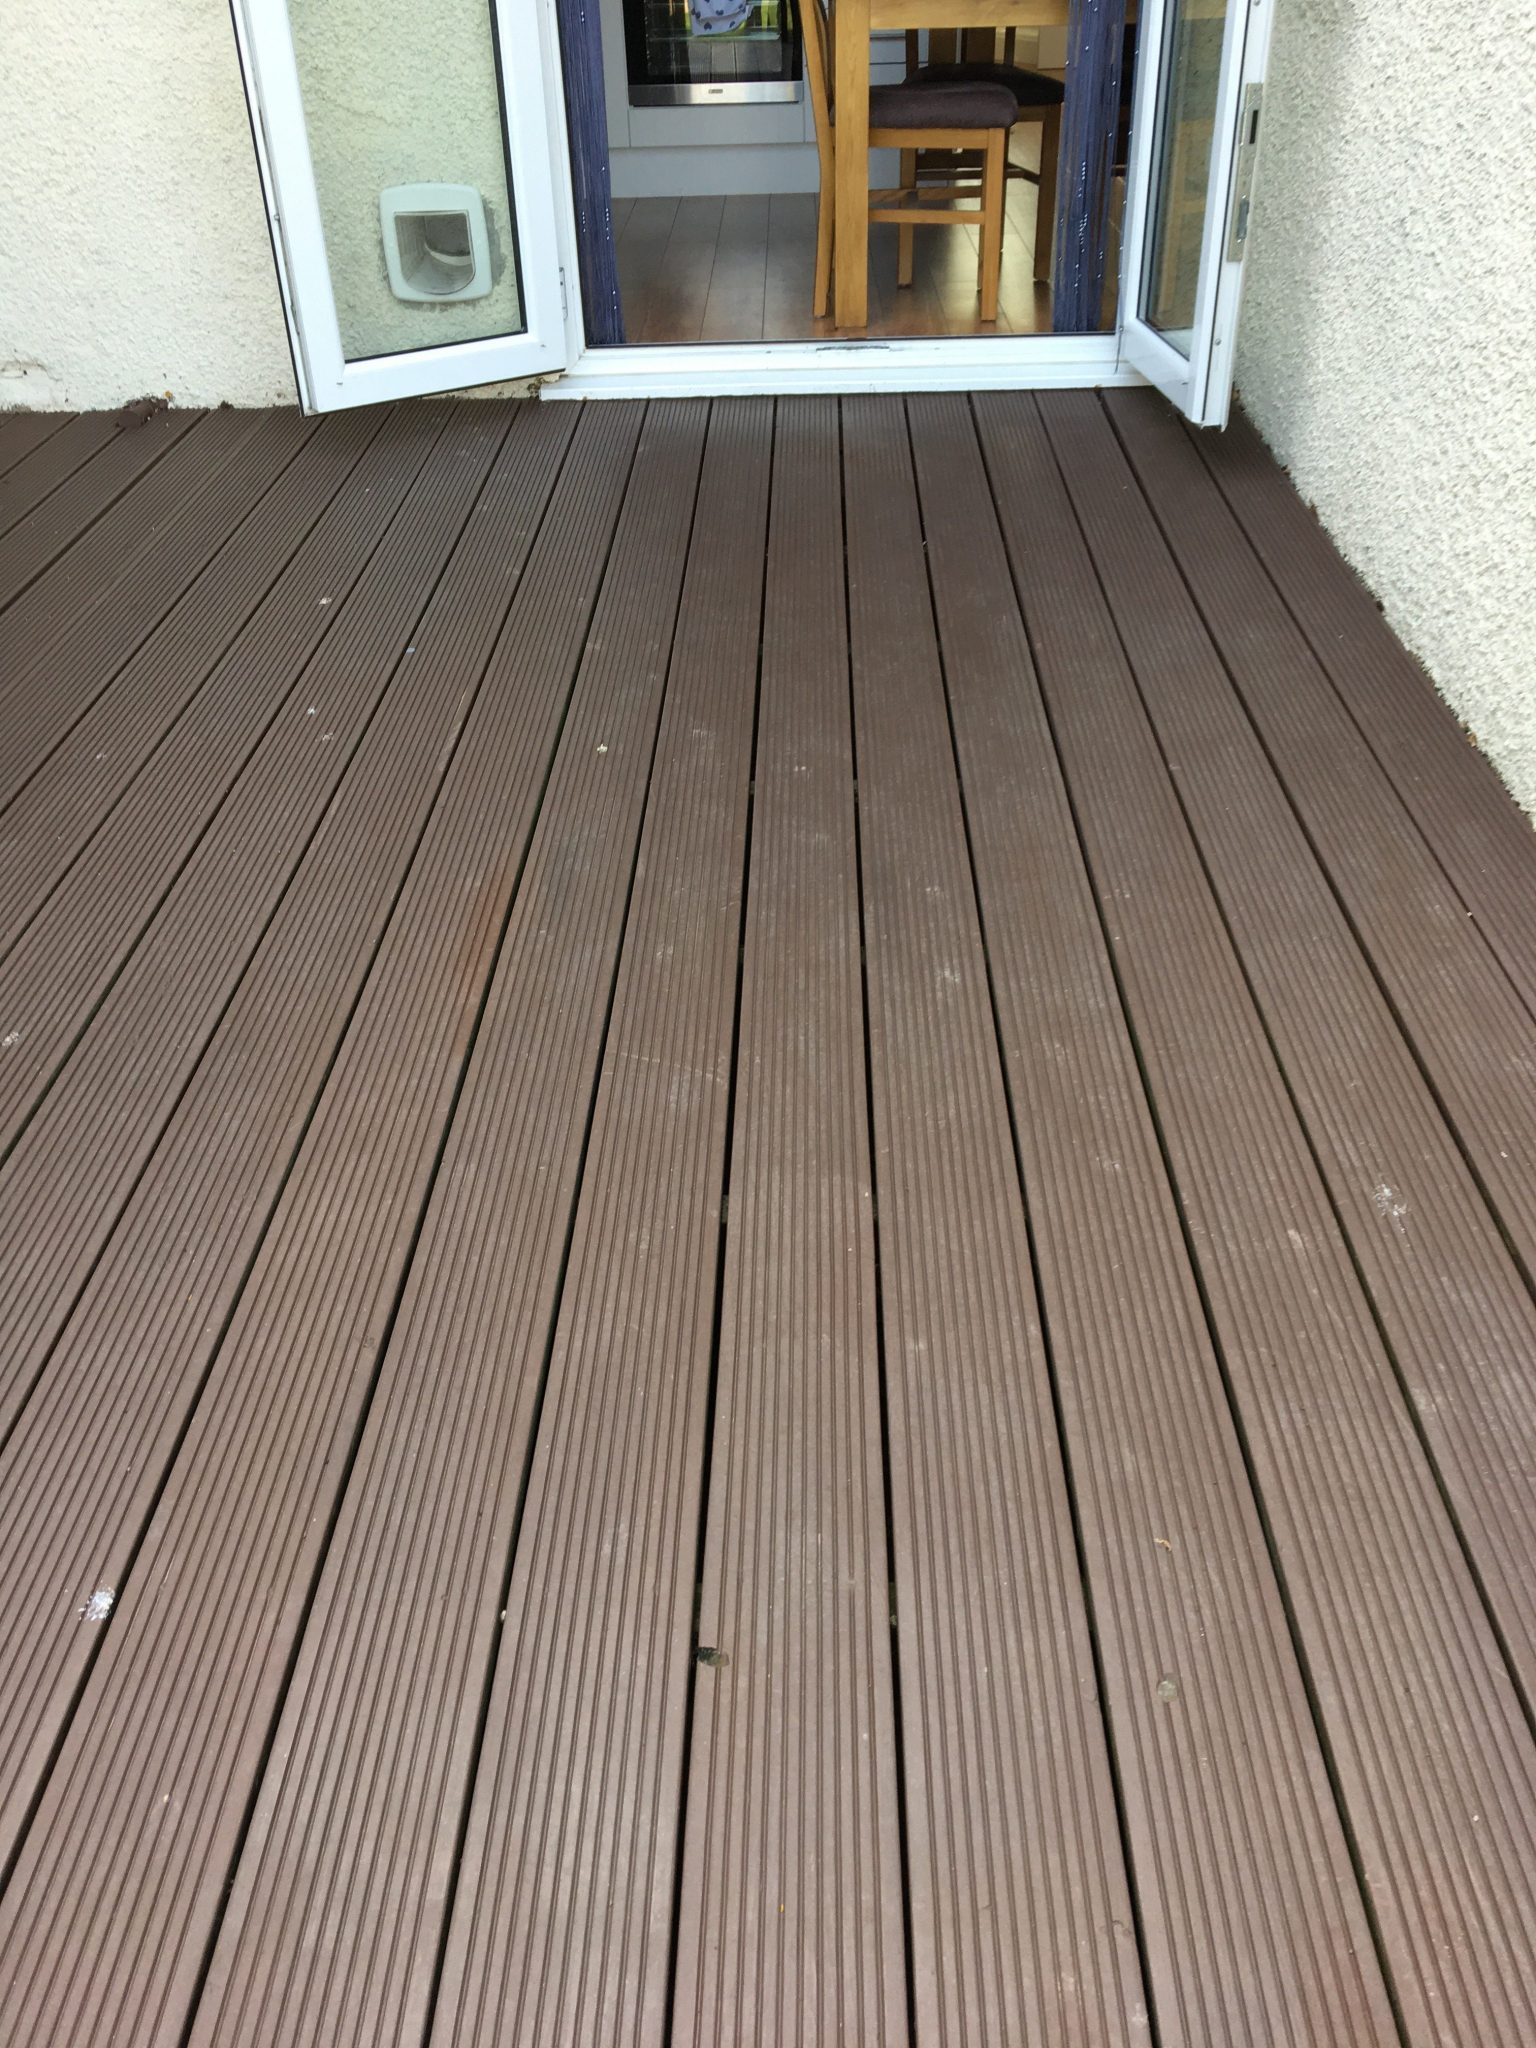 Decking 3 years after application